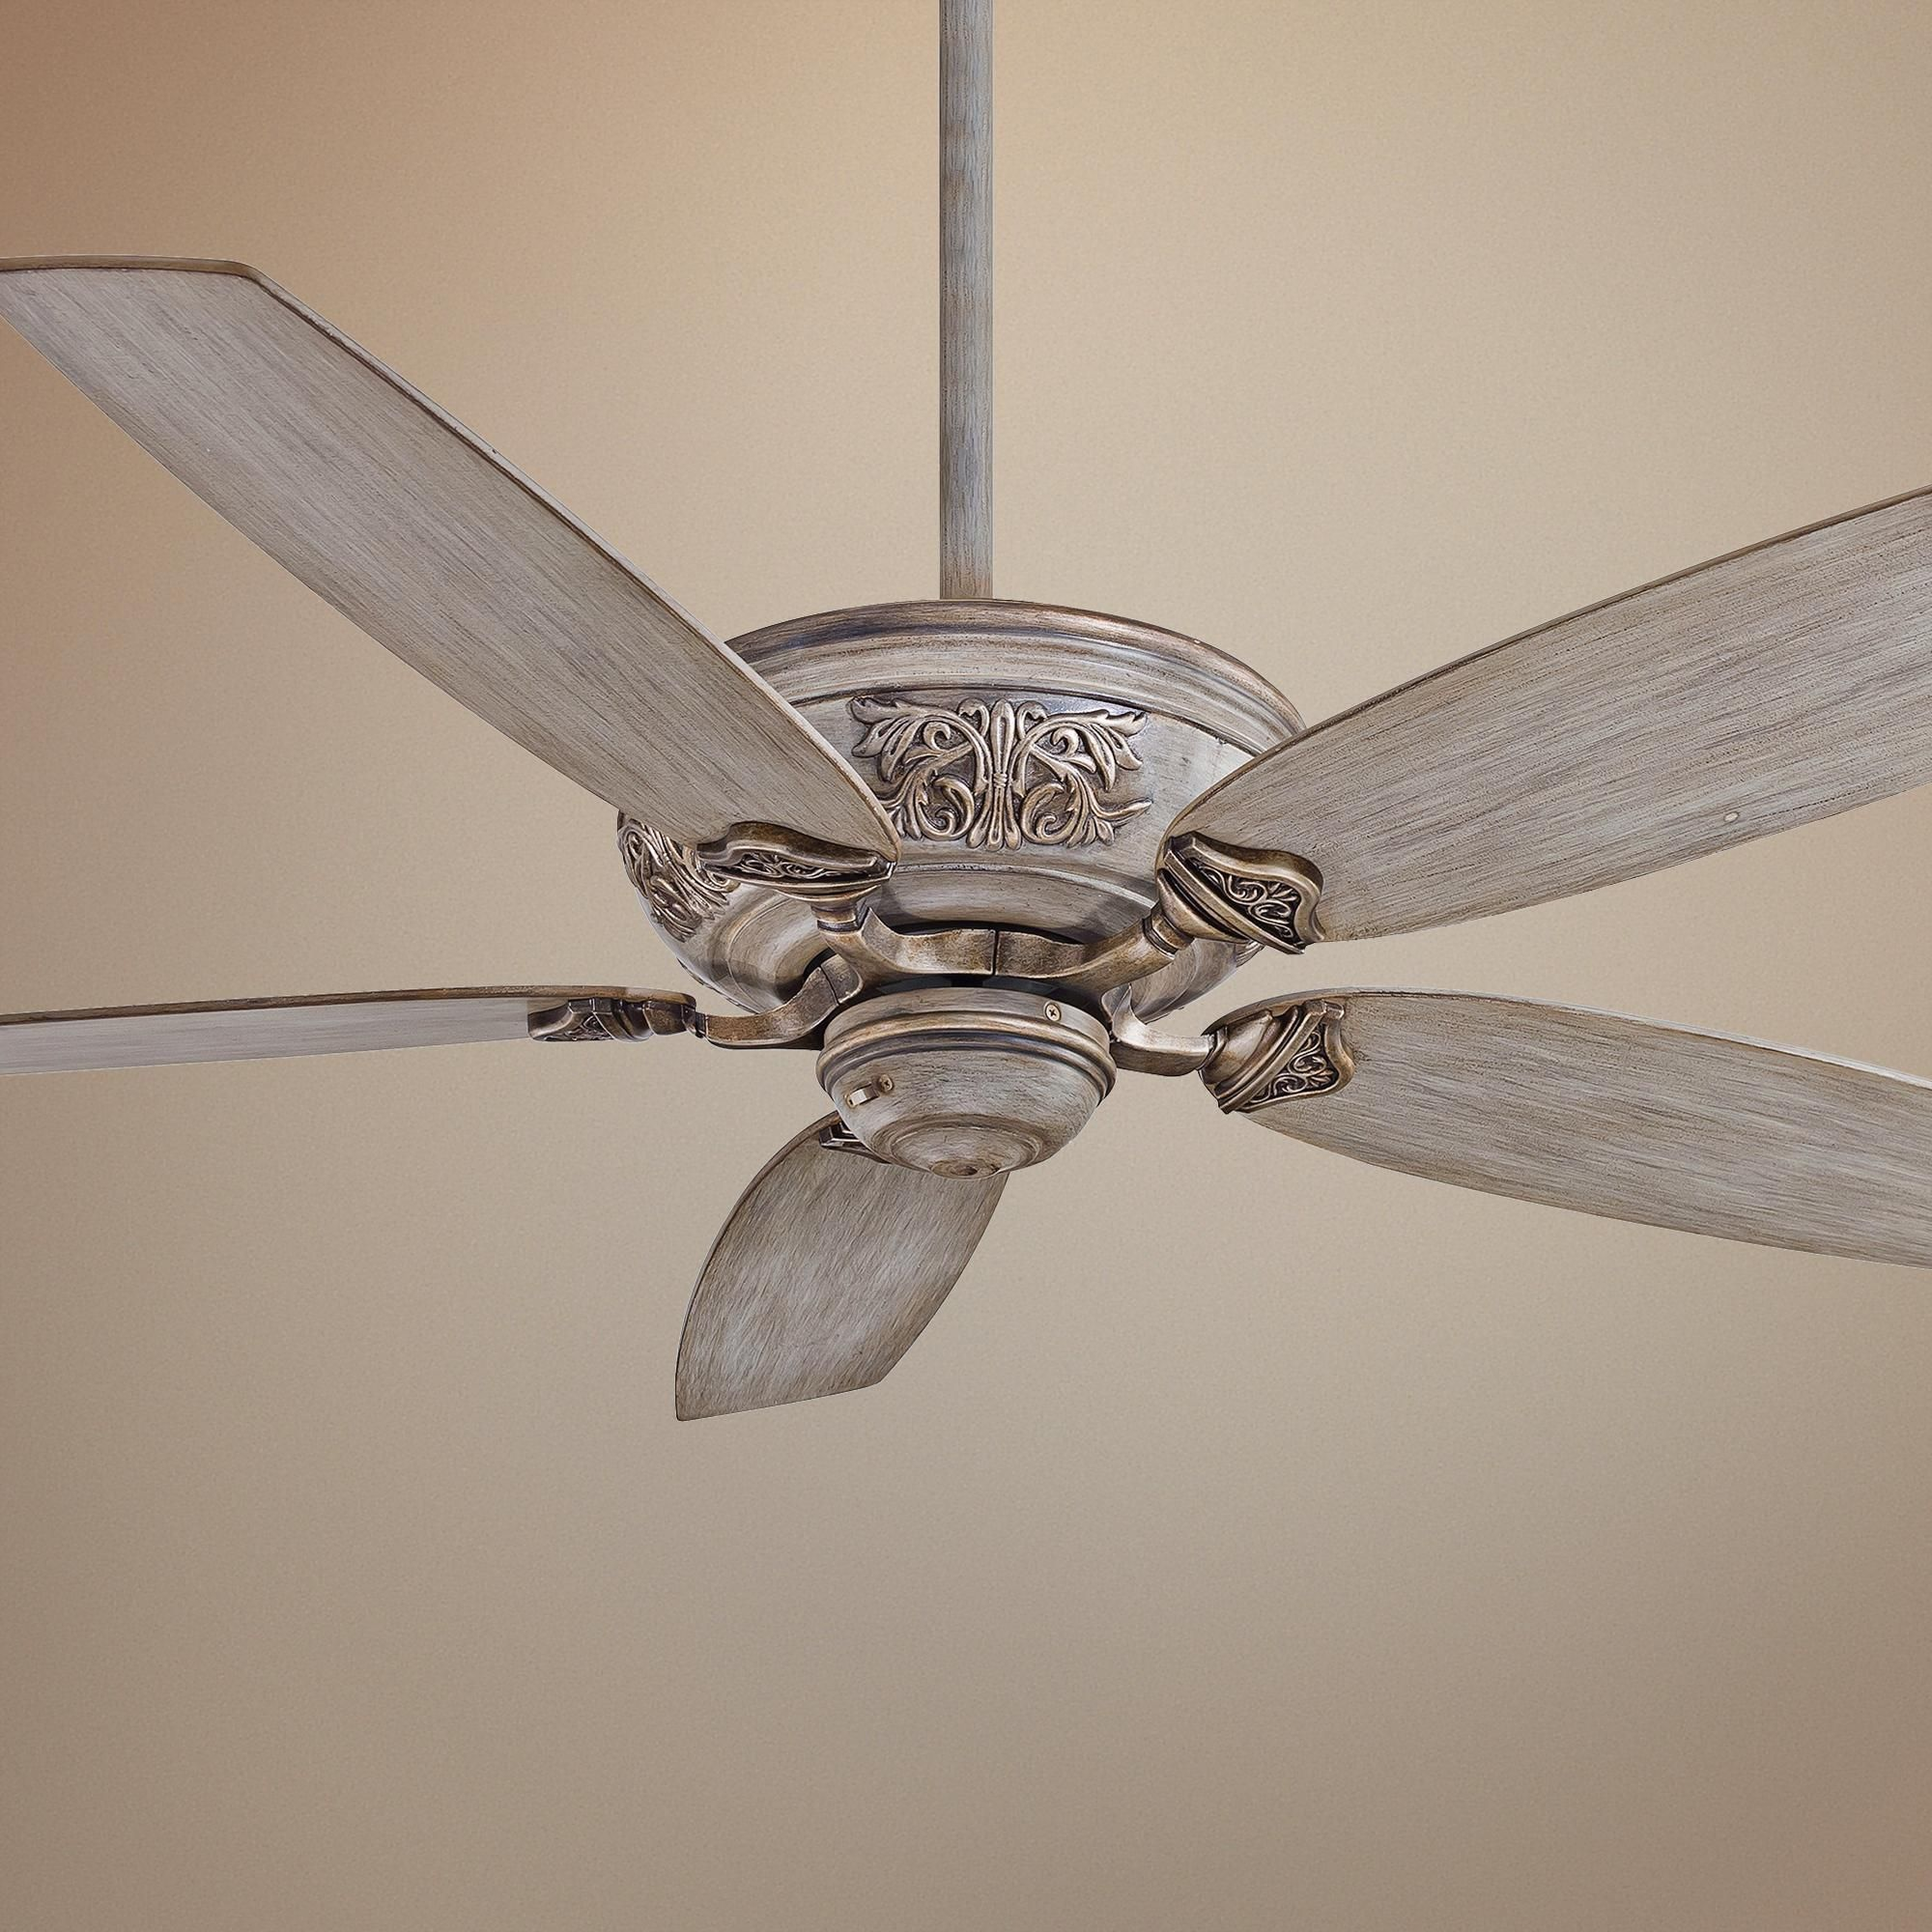 guest fans fan home pinterest over garage pulley suite pin ceiling